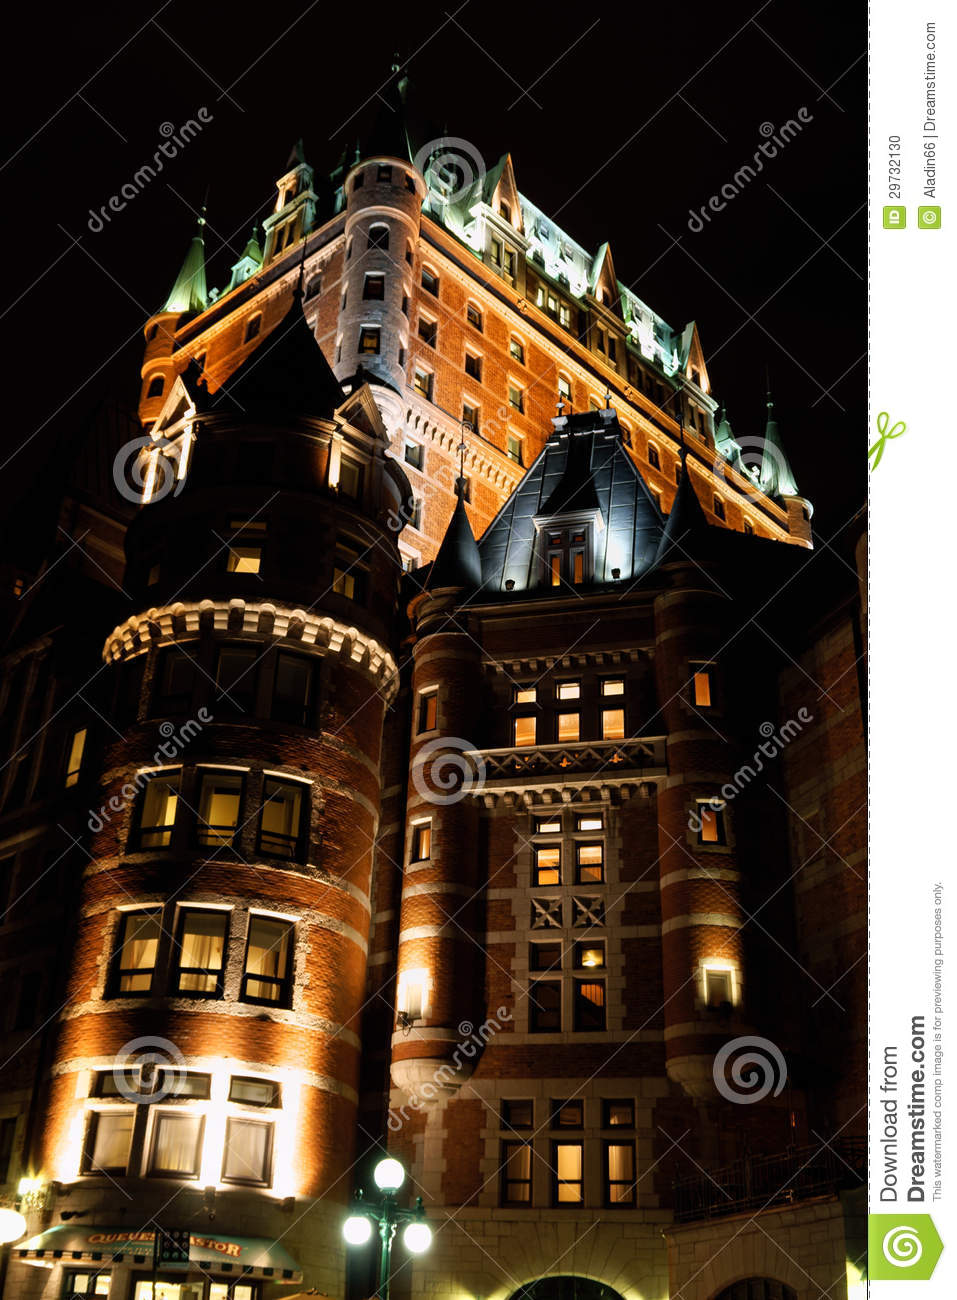 Chateau frontenac hotel in quebec city by night editorial for Design hotel quebec city